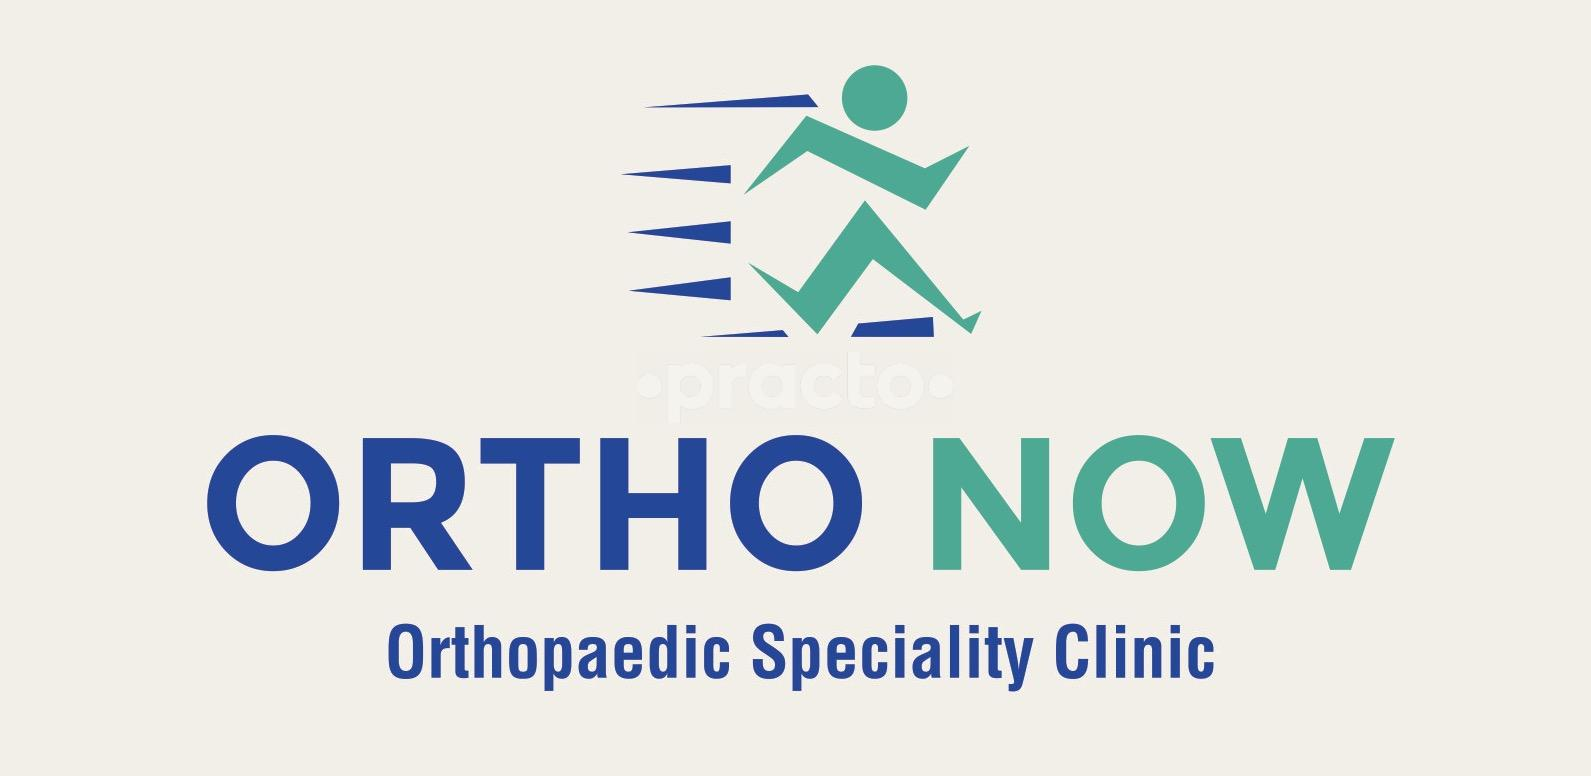 Ortho Now Orthopaedic Speciality Clinic